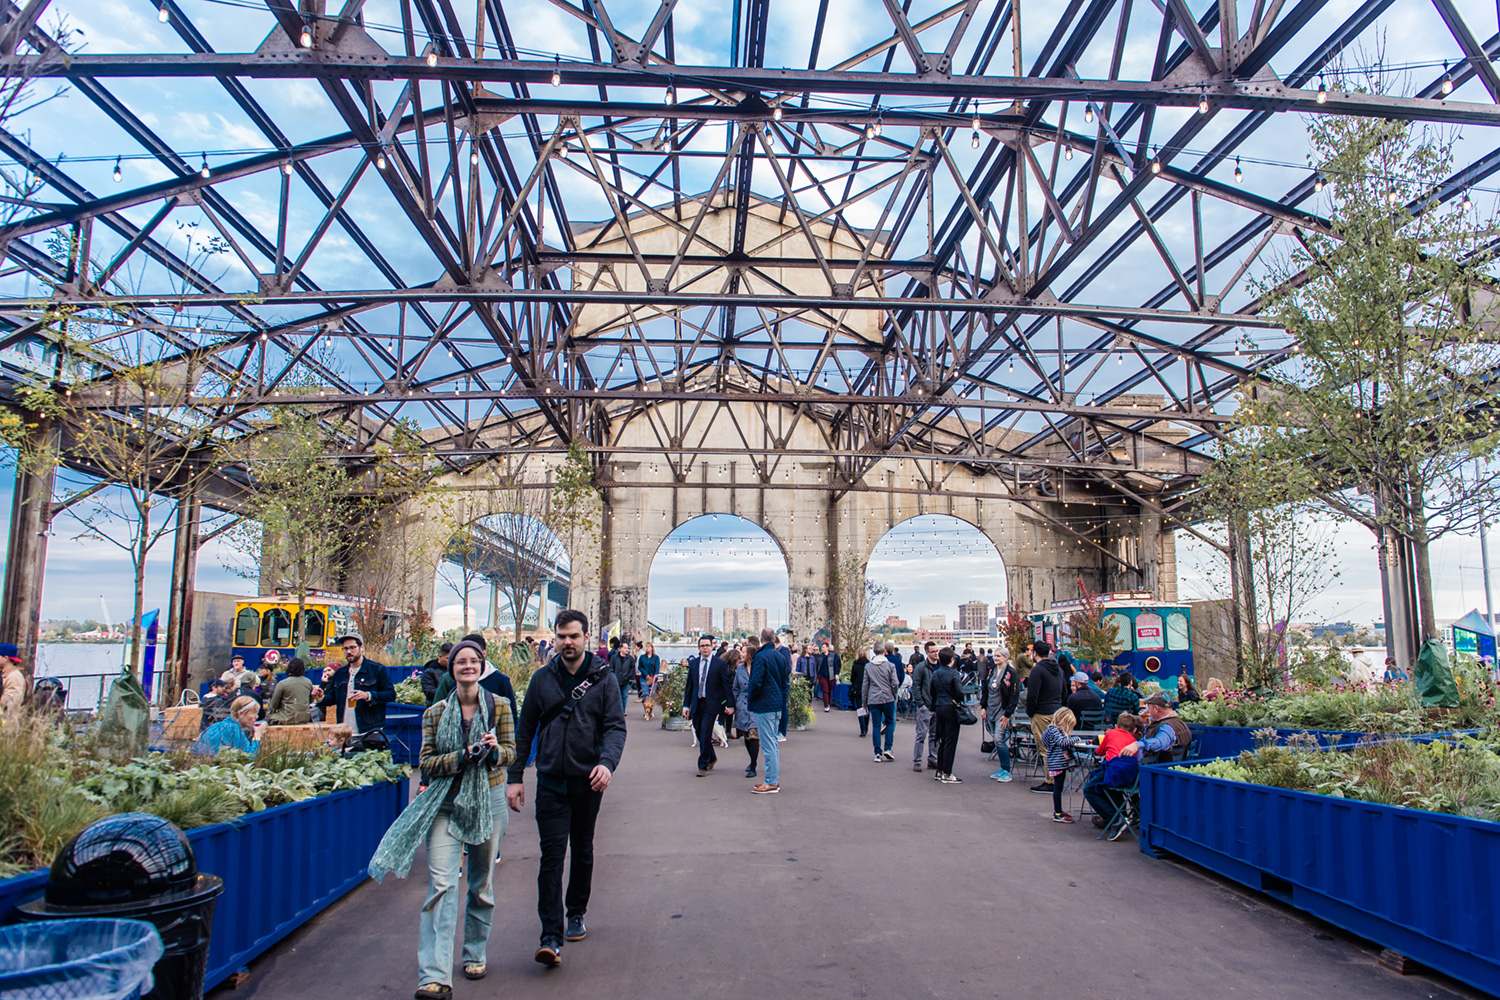 A Giant Food Market Is Popping Up at Cherry Street Pier This Summer